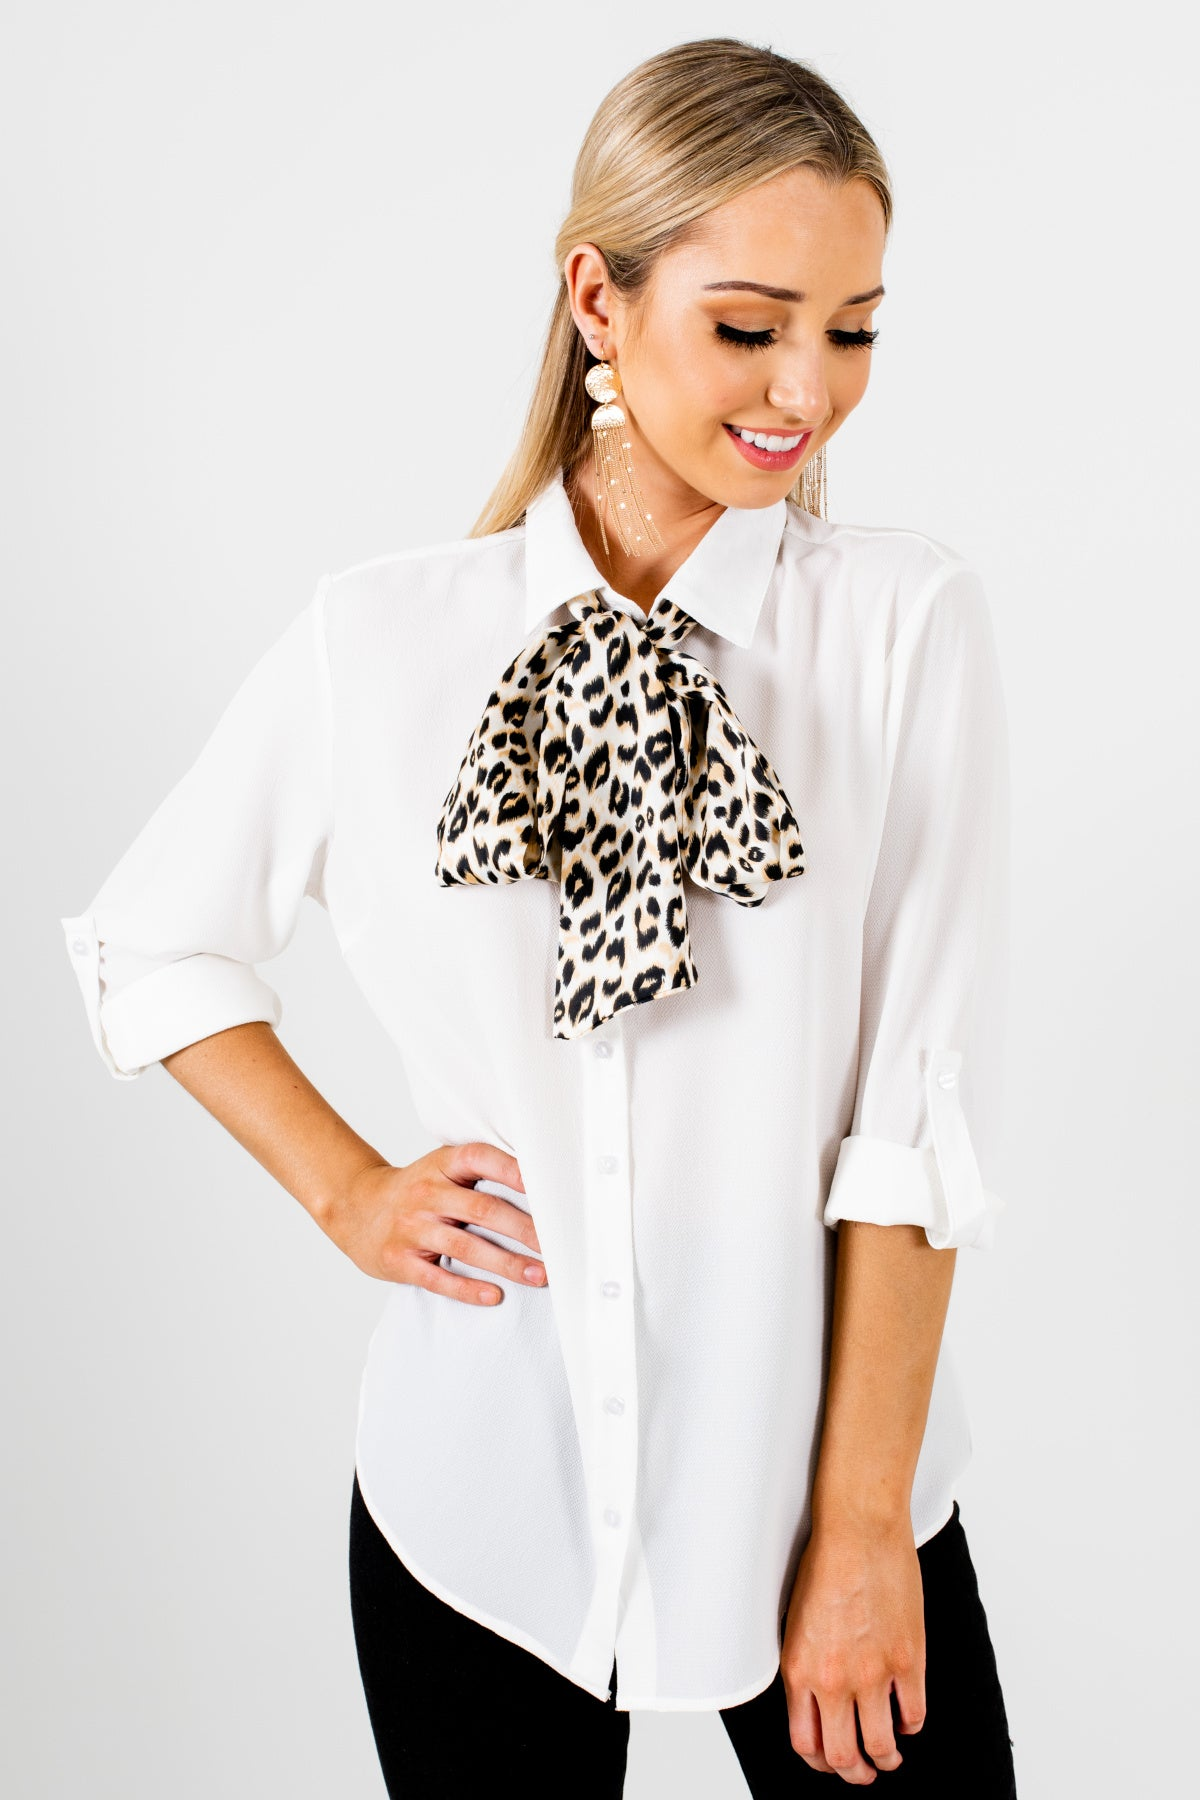 White Button Up Shirt Collar Leopard Print Satin Tie Business Casual